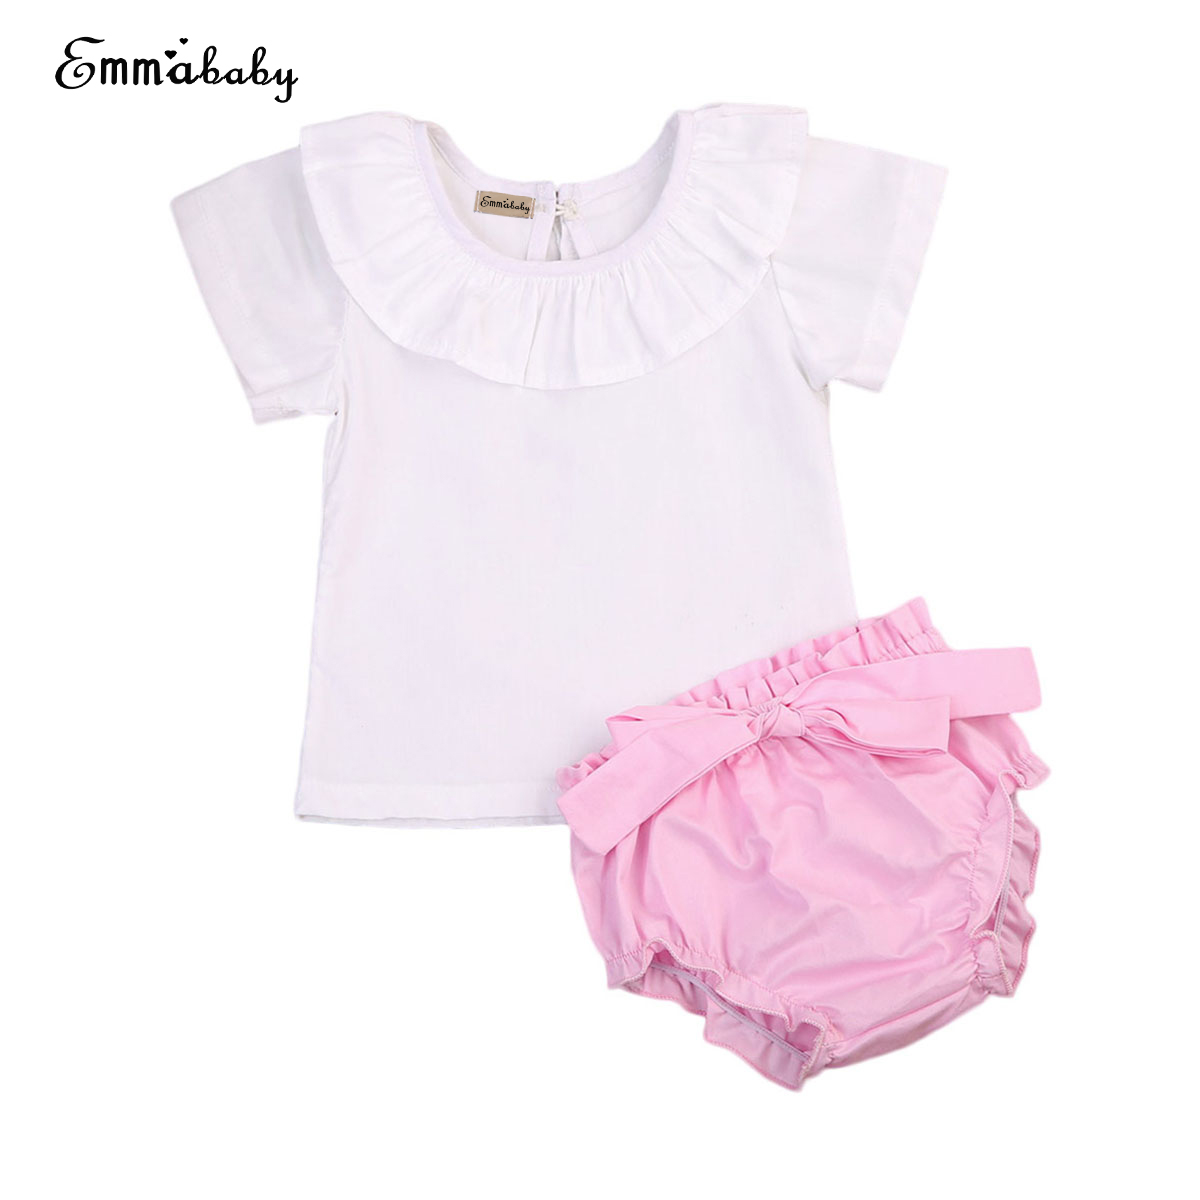 Emmababy Baby Girls Cloth Set 0-24M Sweet Newborn Baby Girls Clothes Short Sleeve T-shirt+Bowknot Shorts 2PCS Outfits Clothes ...